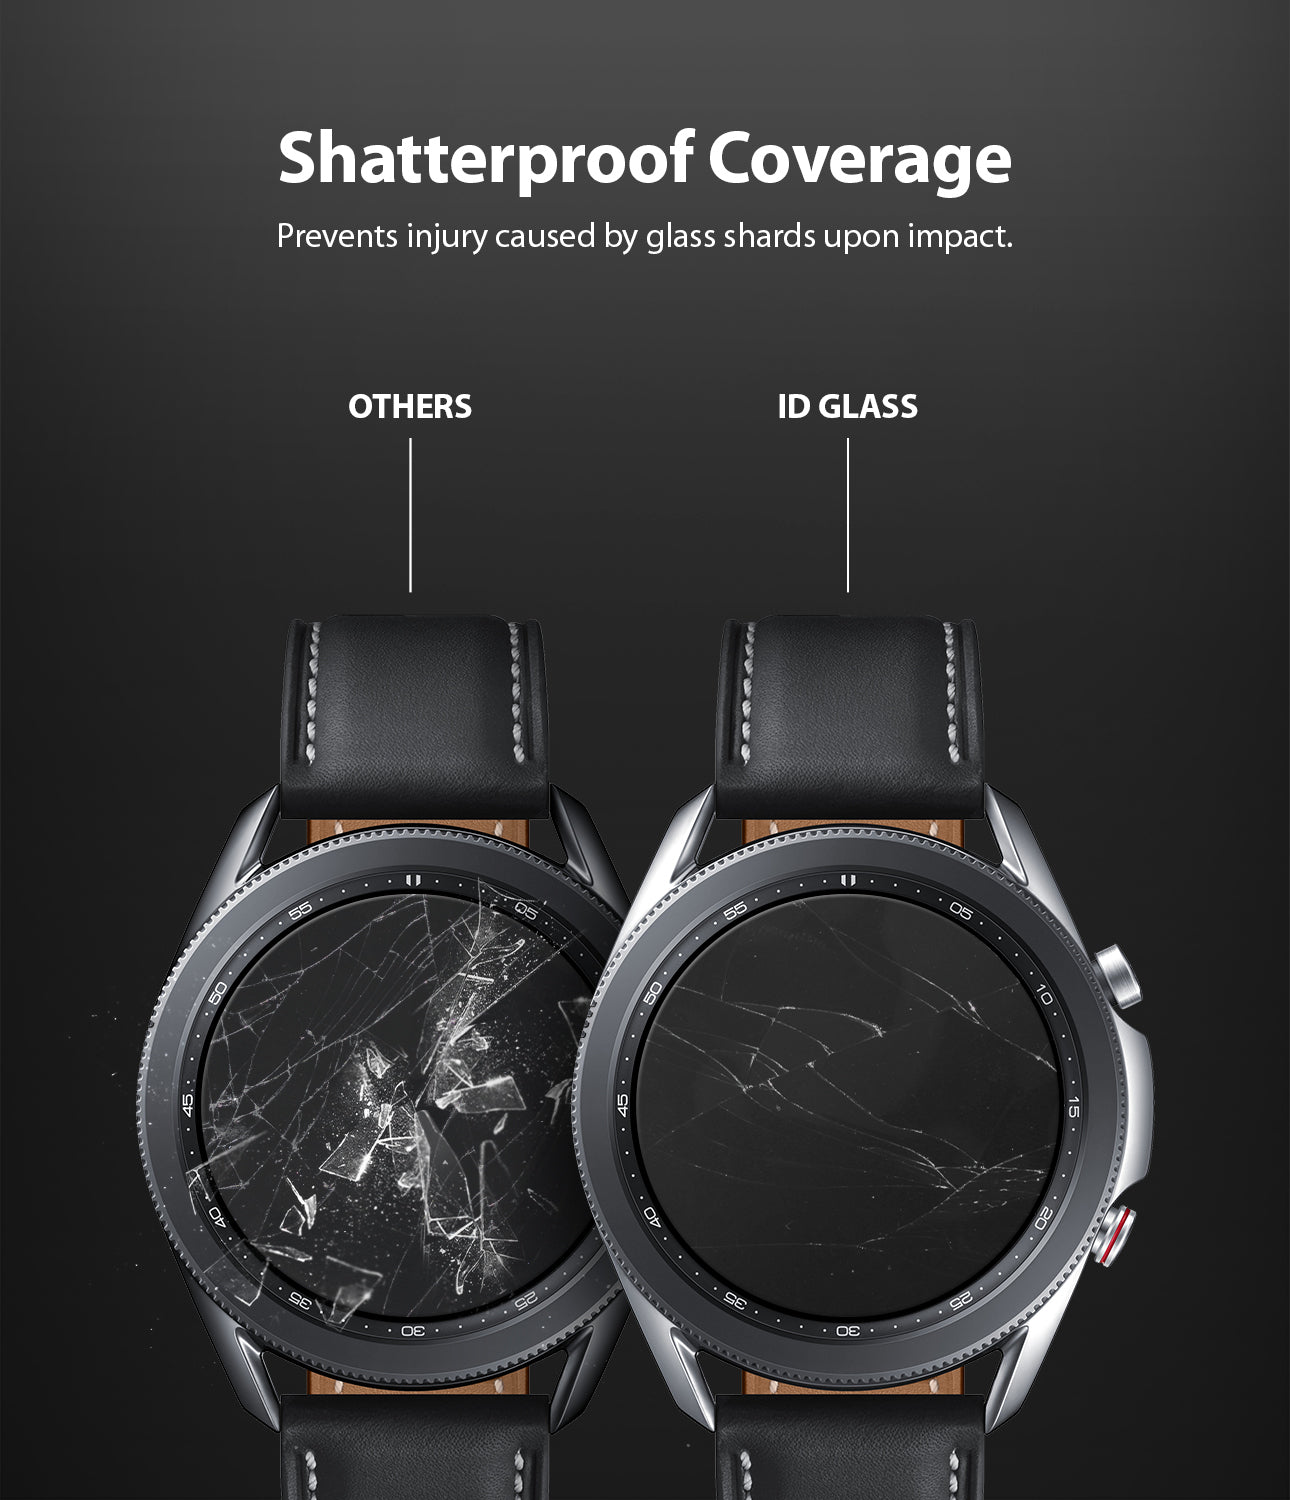 shatterproof coverage - prevents injury caused by glass shards upon impact